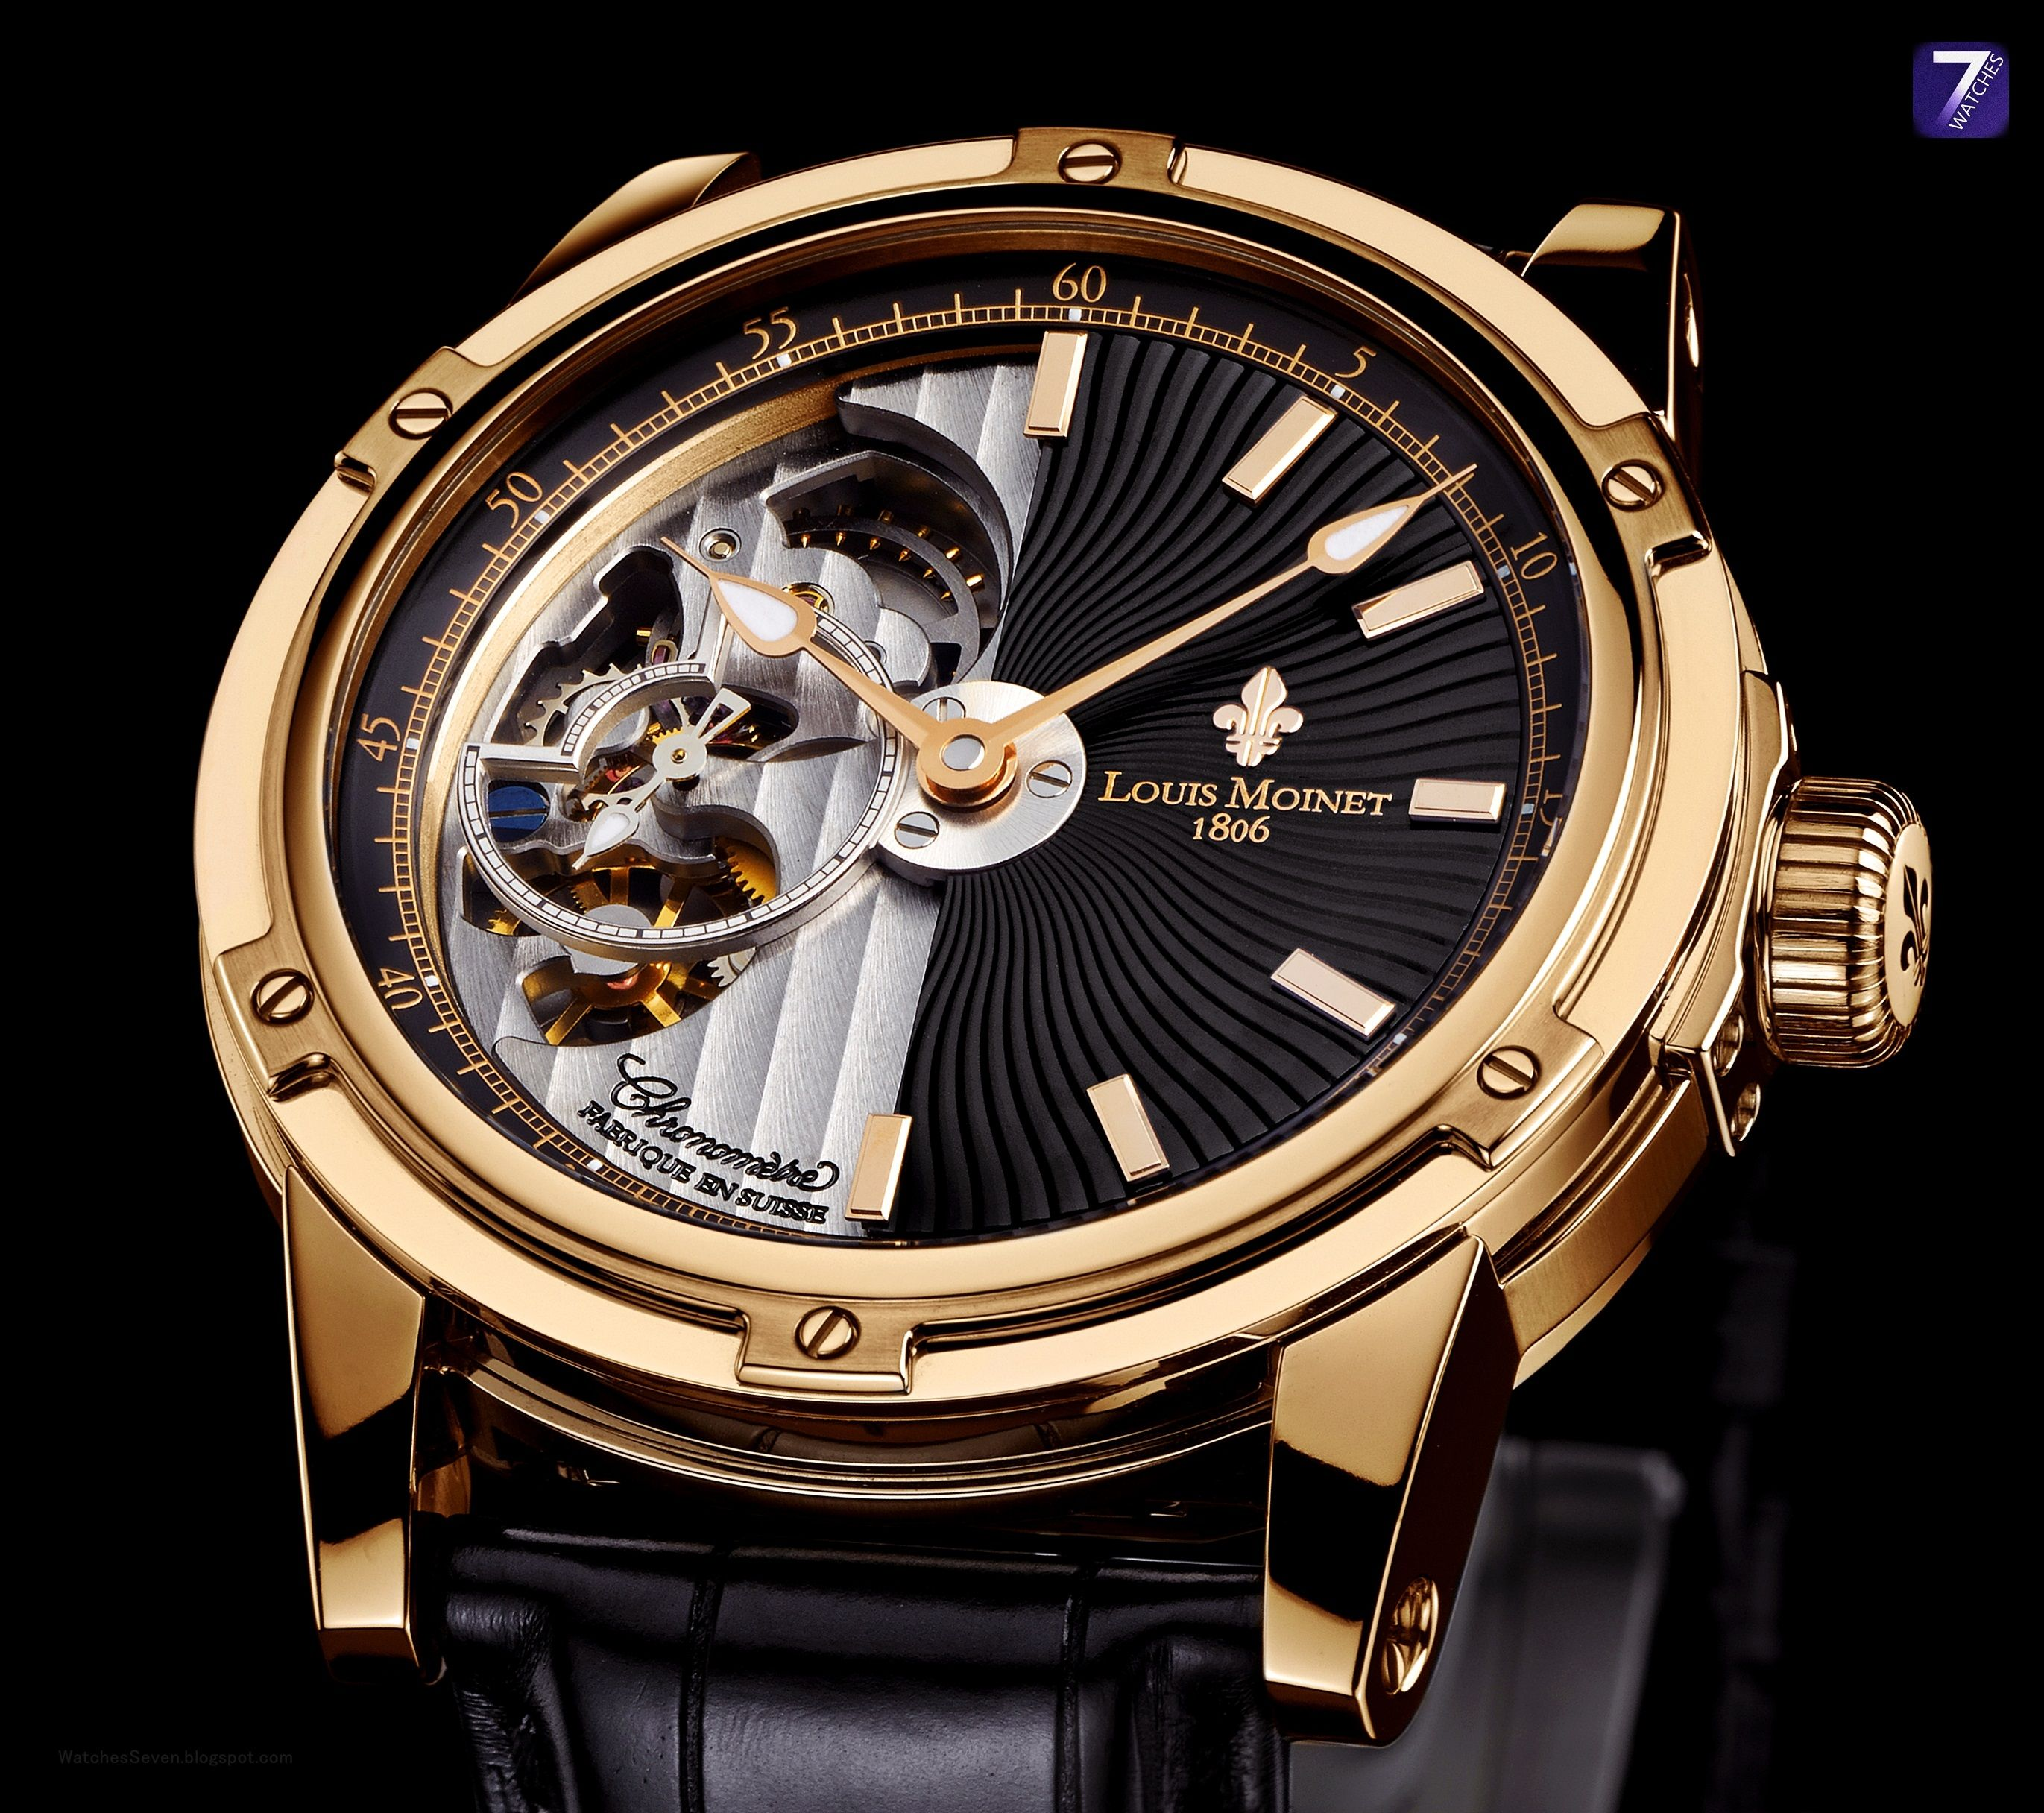 Watches 7 louis moinet mecanograph chronometer limited edition for Louis moinet watch